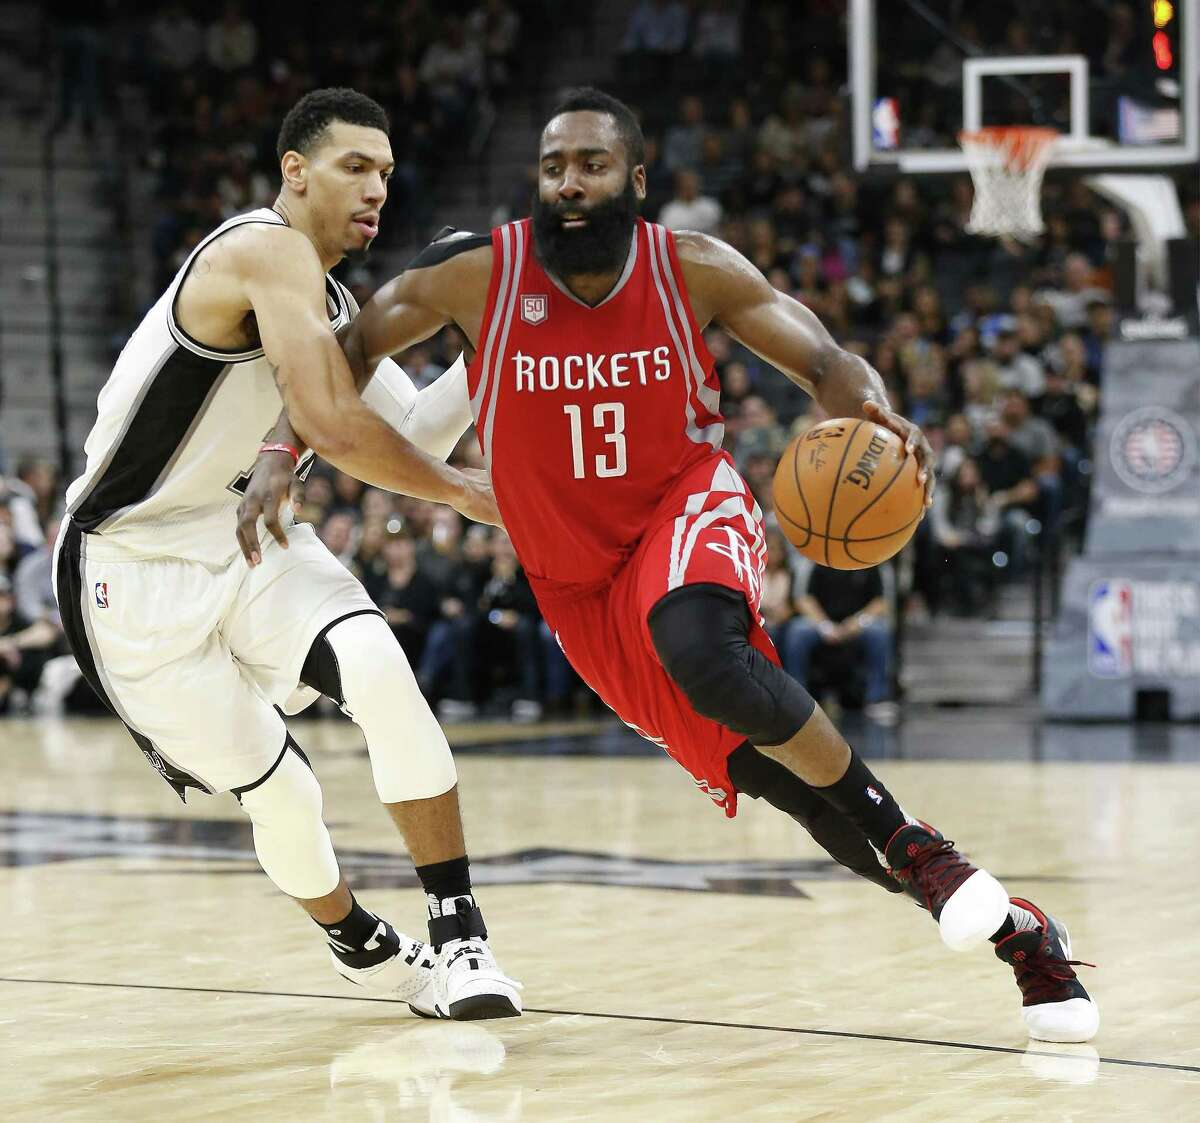 Beware Harden's drives: Harden is going to come from all angles, utilizing his eccentric herky-jerky movements to slither through the paint. His ability to wriggle through thickets of defenders exposes gaps, leaving multiple 3-point marksmen open at the arc. The Rockets averaged 30.7 drives, 5th in NBA. Forming a sort of blockade while staying within arm's length of shooters is a difficult task, but no one said stopping this team would be easy.